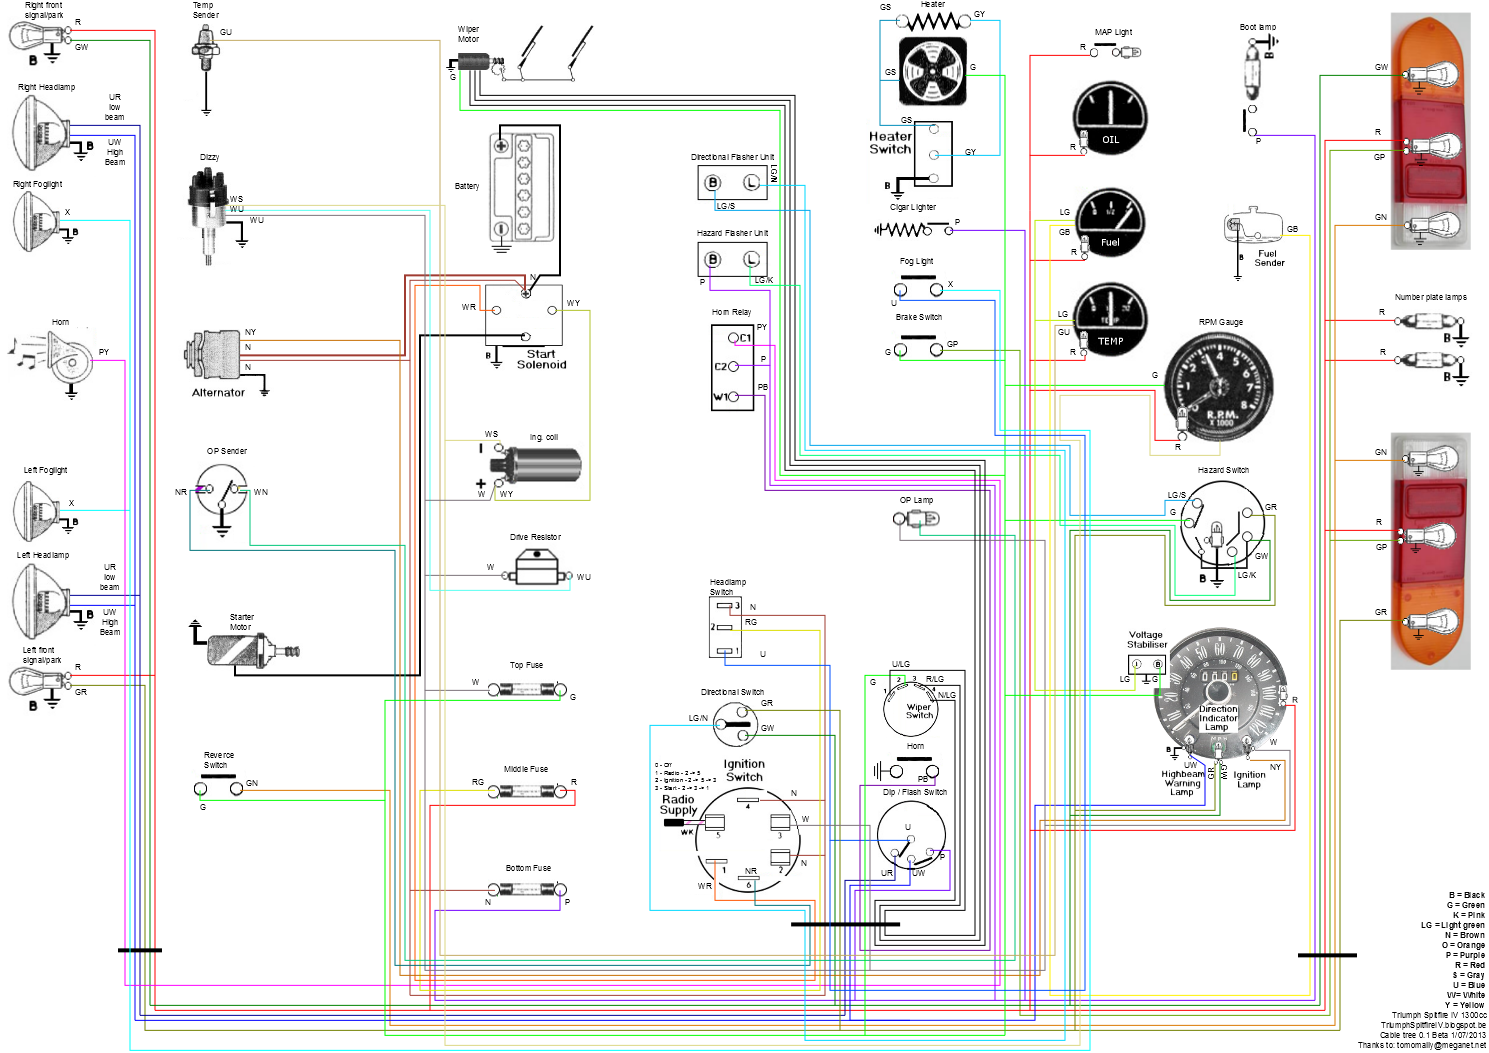 spitfire iv wiring diagram mk4 wiring diagram mk4 tdi wiring diagram \u2022 wiring diagrams j  at creativeand.co